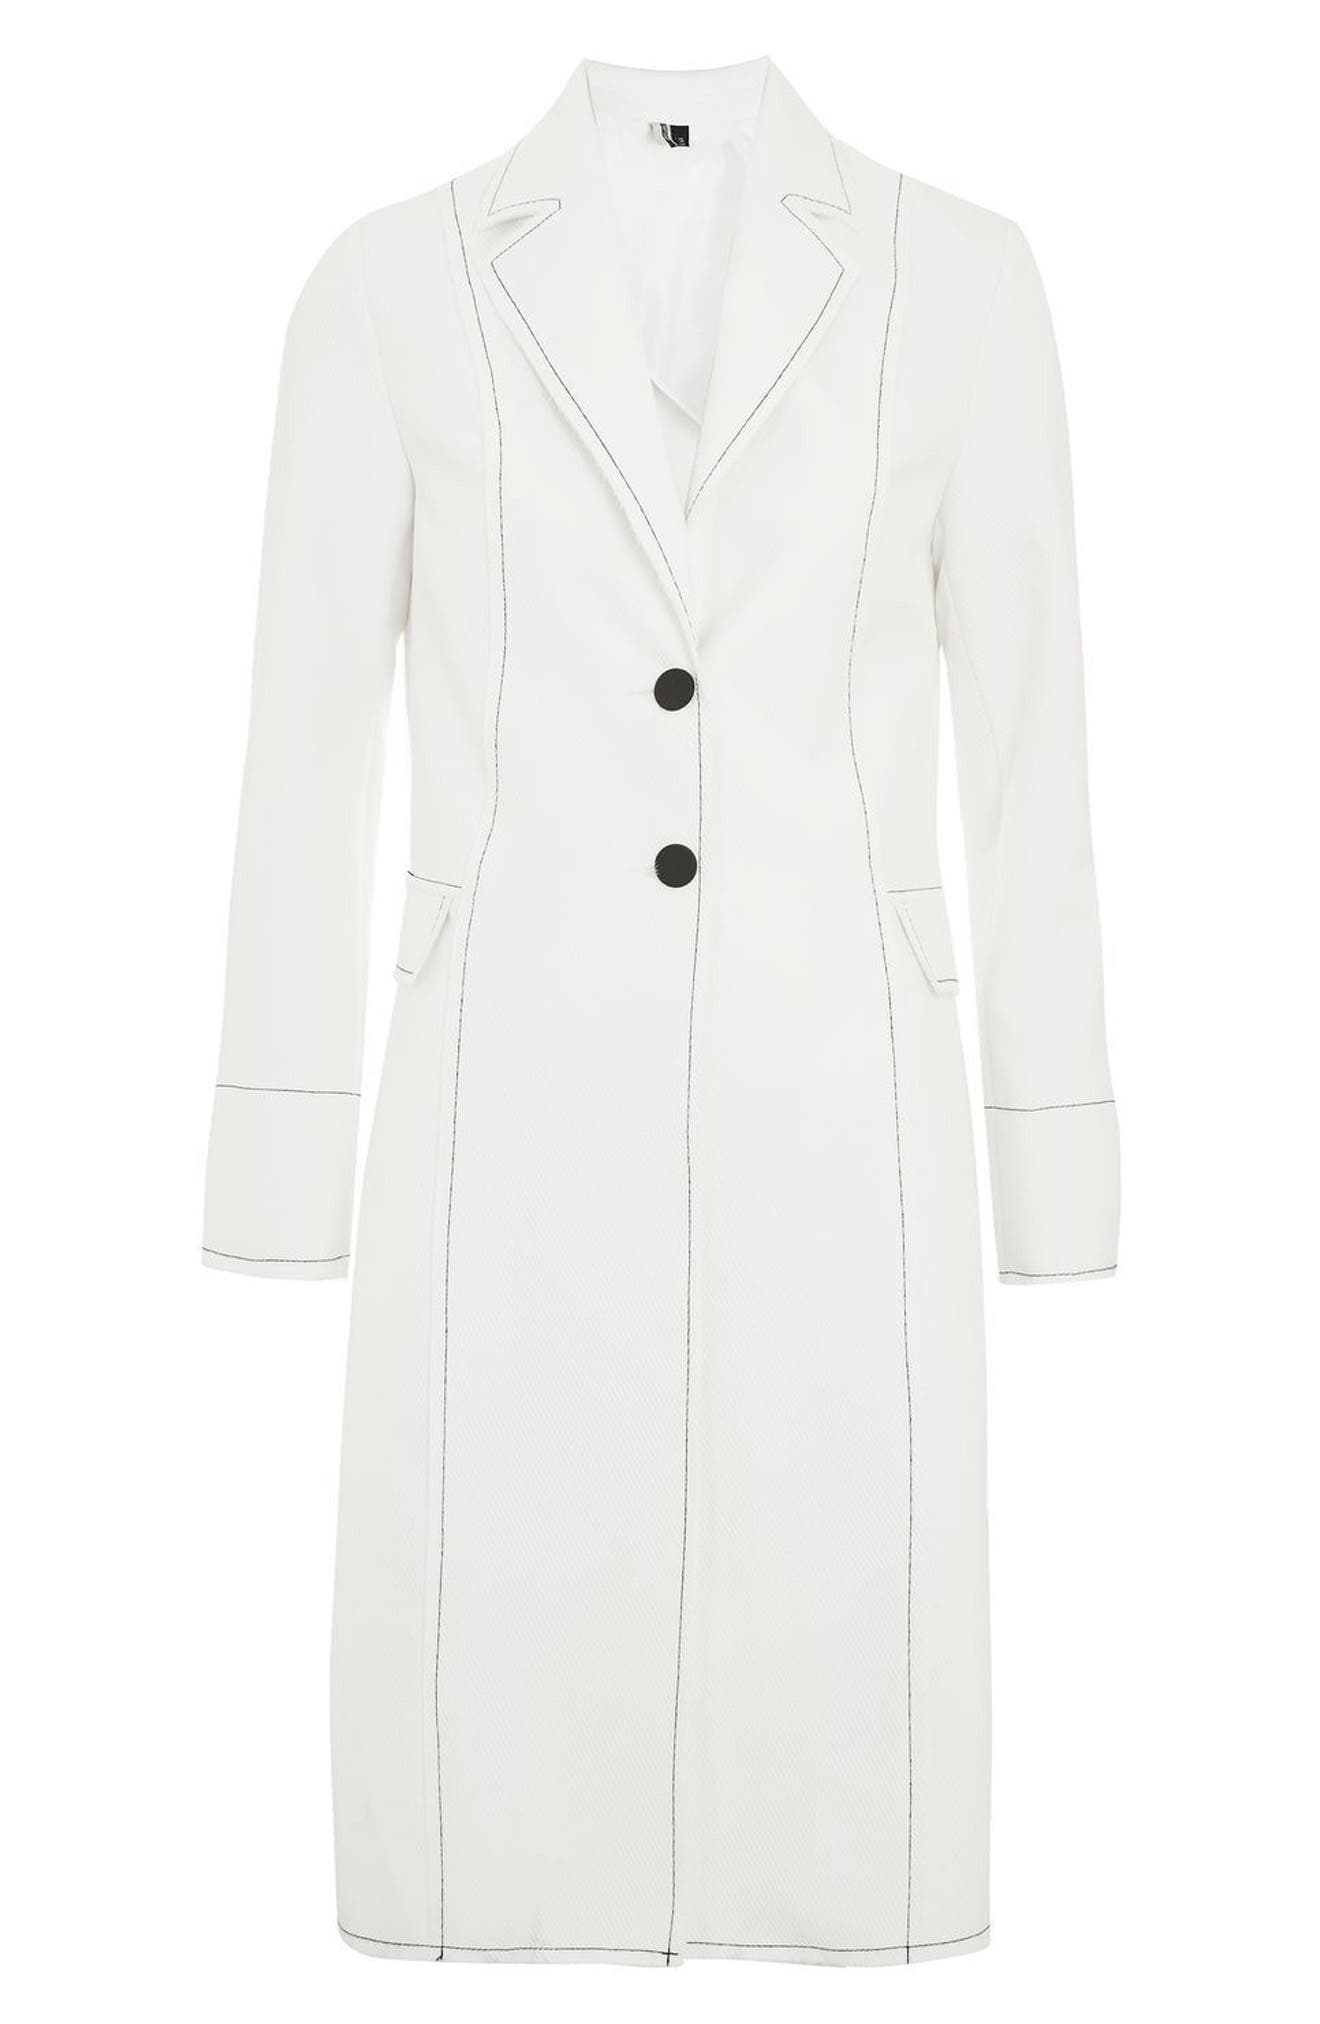 Contrast Stitch Twill Coat,                             Alternate thumbnail 5, color,                             100